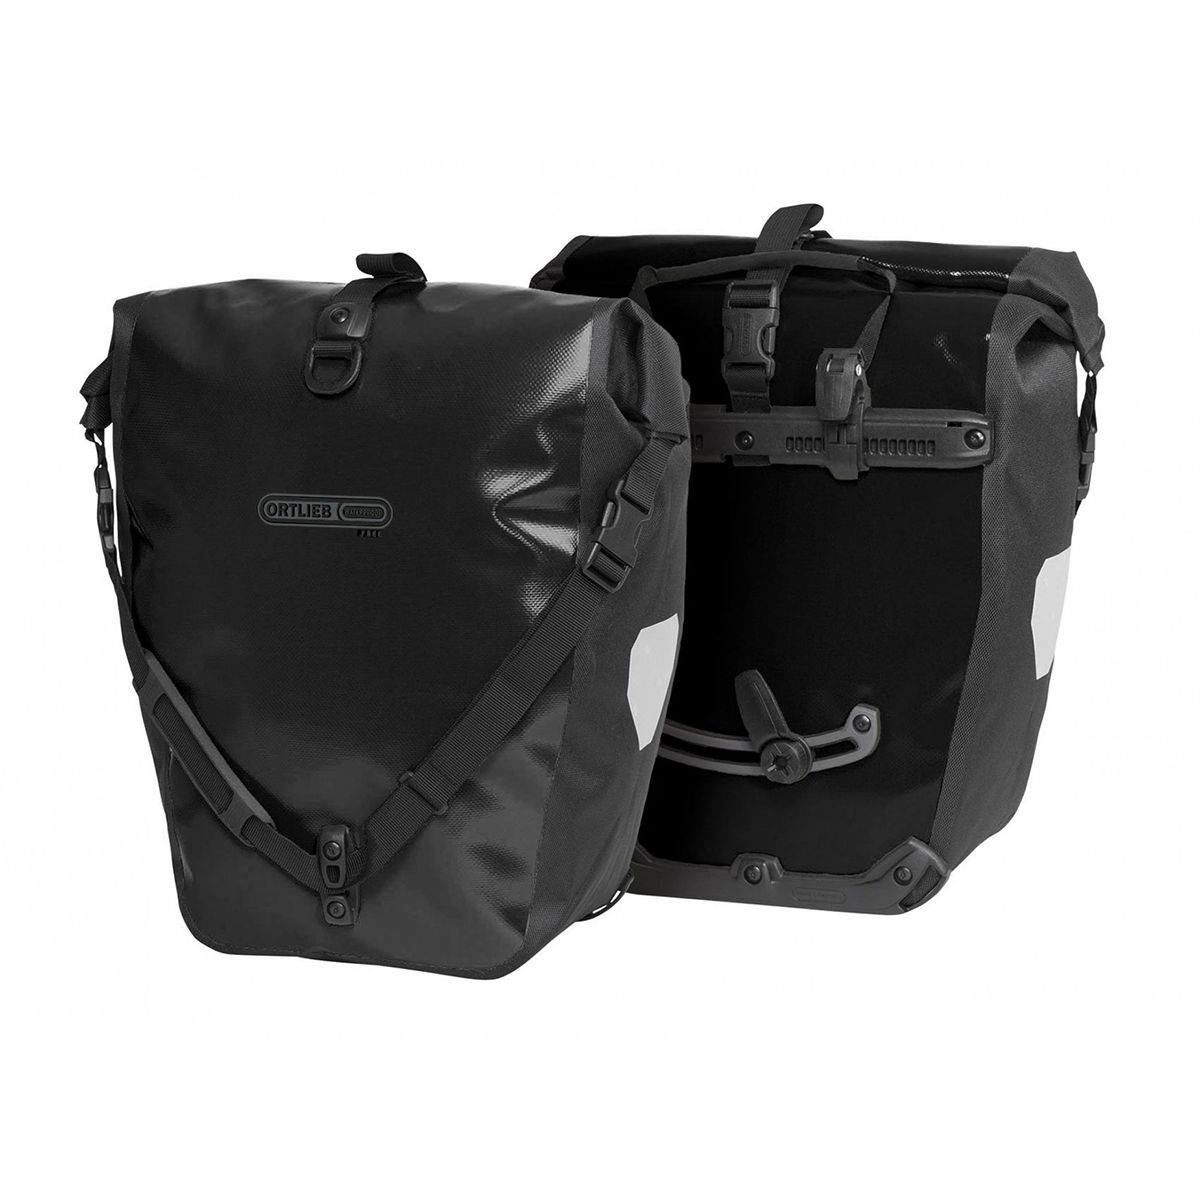 BACK-ROLLER FREE set of two pannier bags